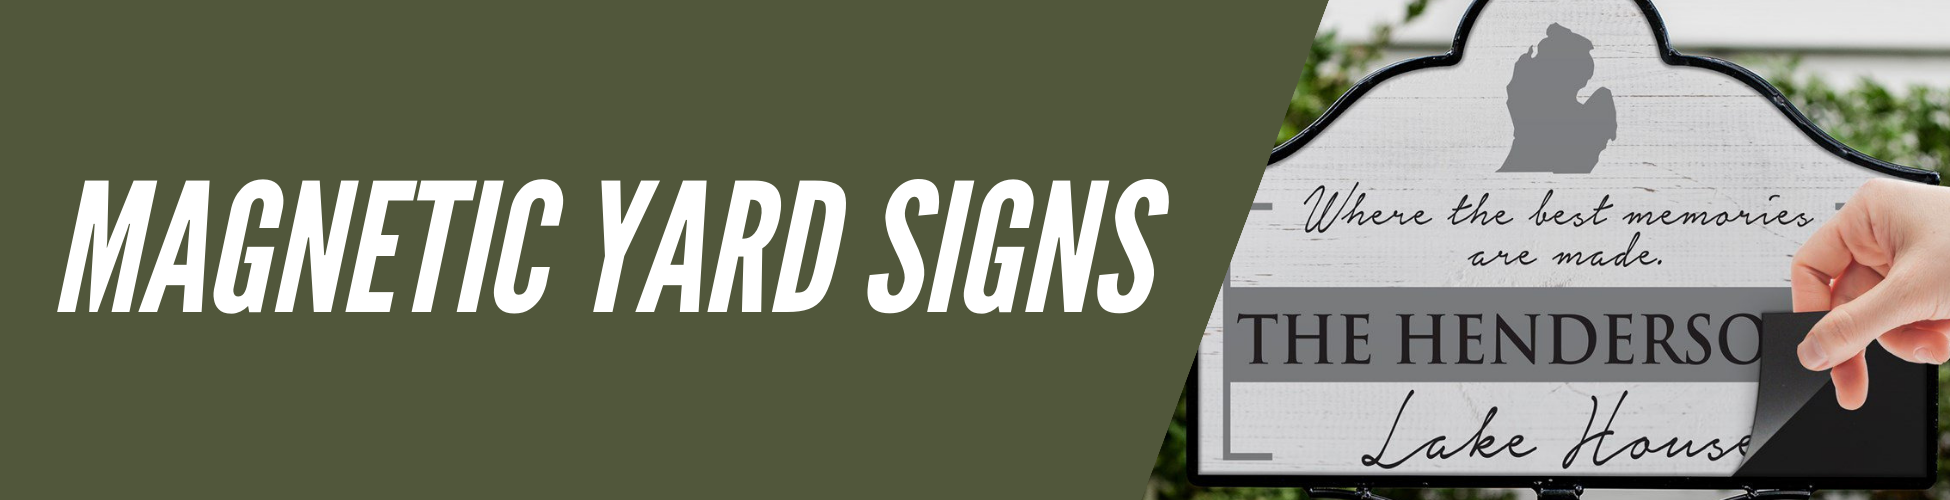 magnetic-yard-signs-banner-v3.png